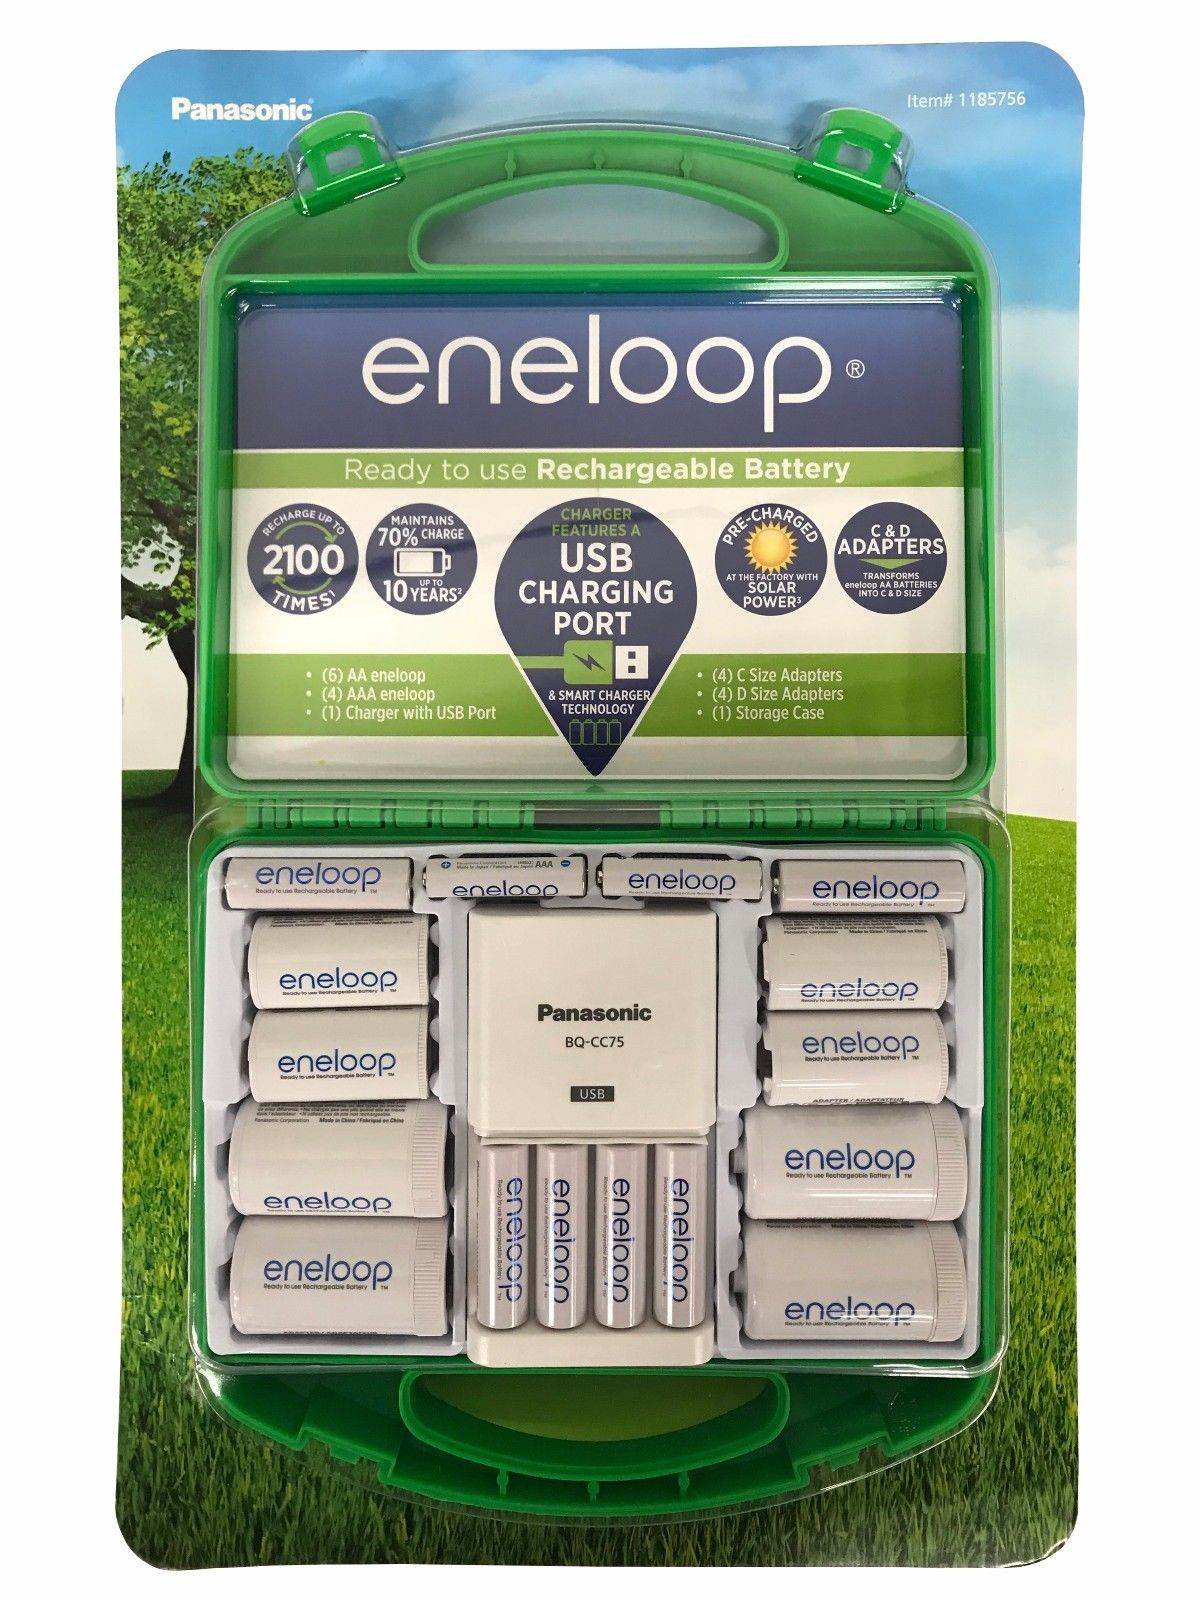 Panasonic Eneloop Ready to Use Rechargeable Batteries, AA/AAA with C/D Adapters